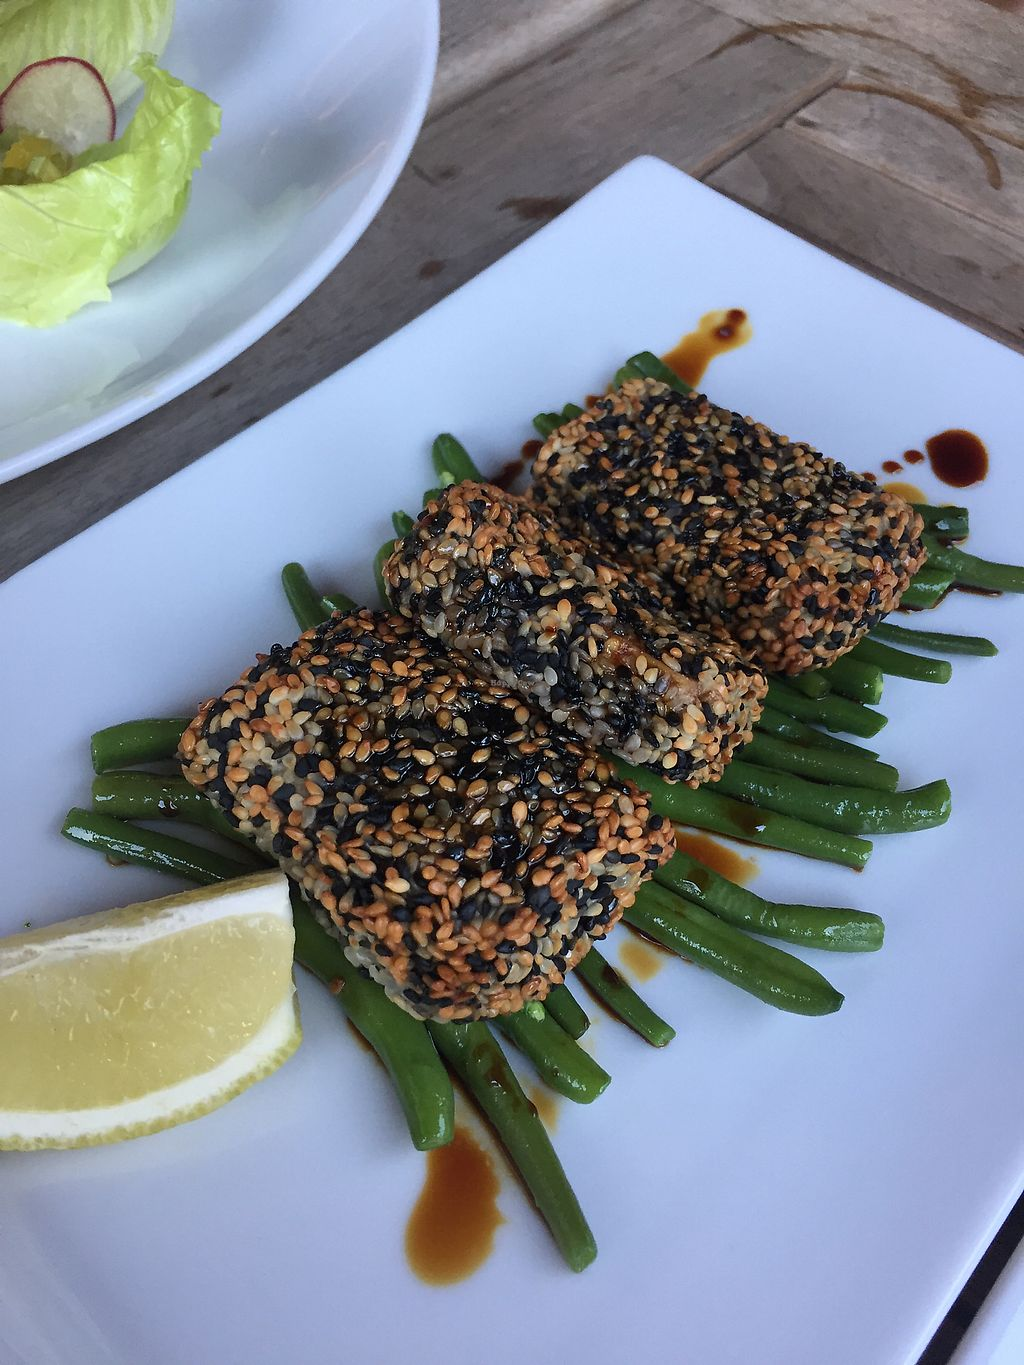 """Photo of Eqvita  by <a href=""""/members/profile/MeredithGraham"""">MeredithGraham</a> <br/>sesame tofu <br/> July 10, 2017  - <a href='/contact/abuse/image/72358/278681'>Report</a>"""